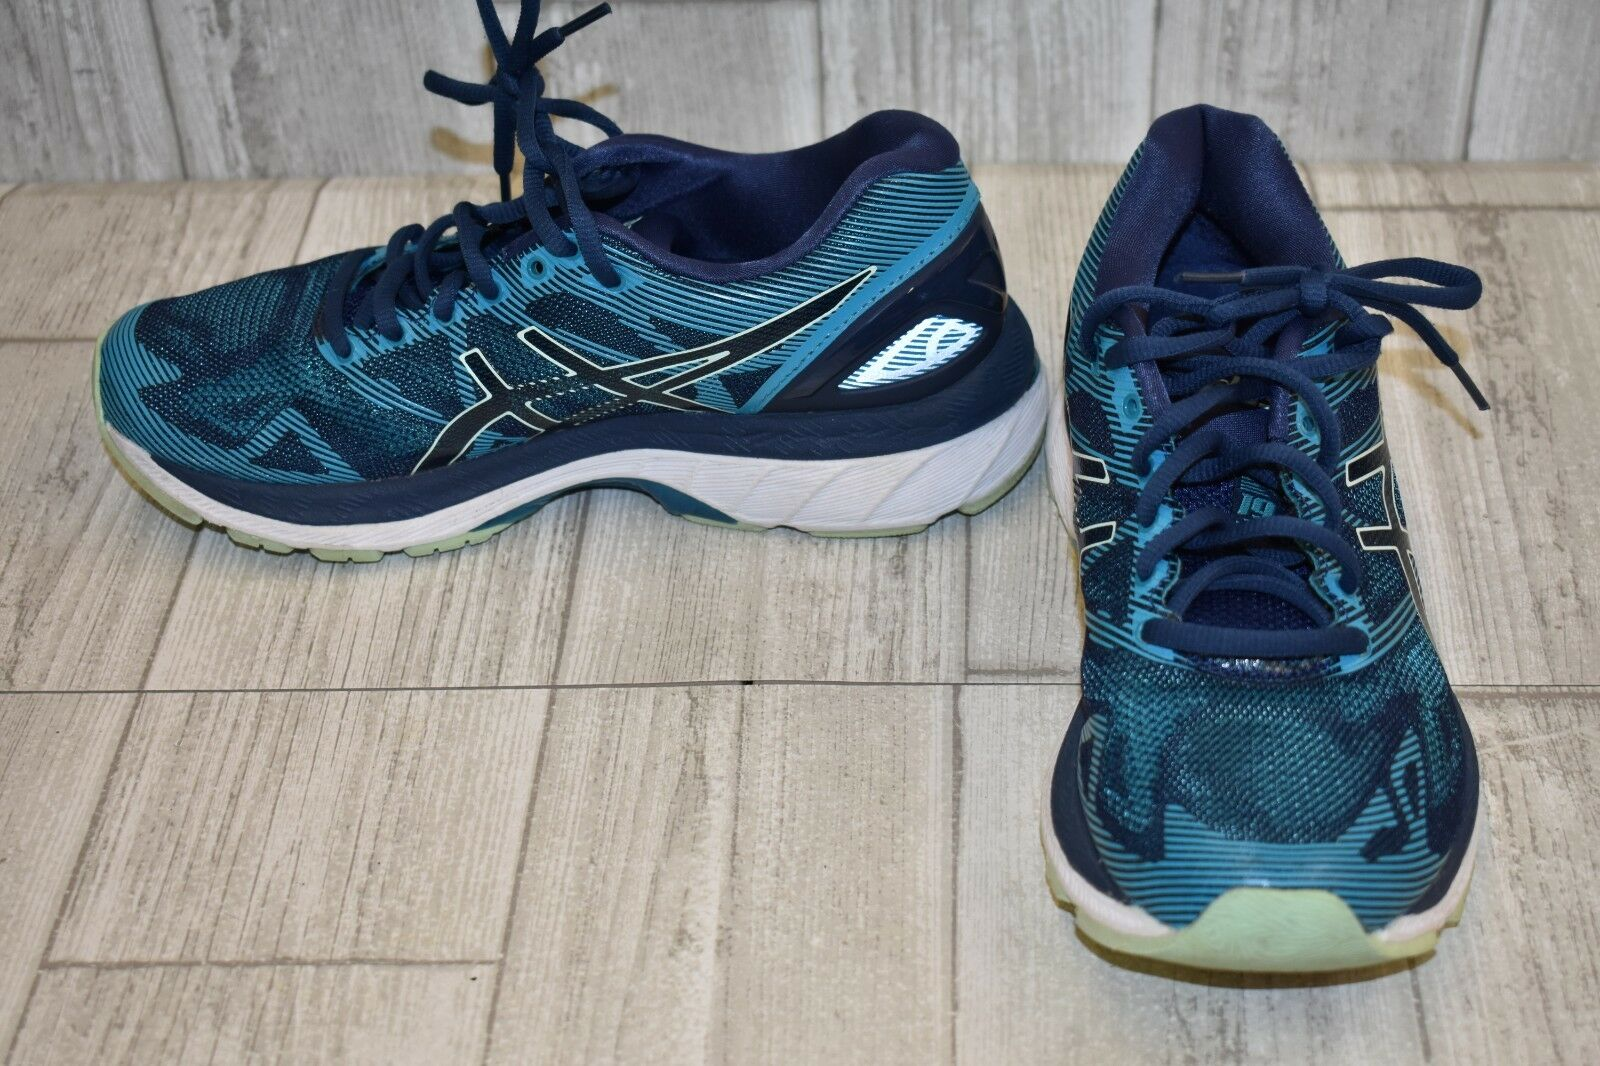 ASICS GEL-Nimbus 19 Running shoes - Women's Size 5.5 Navy